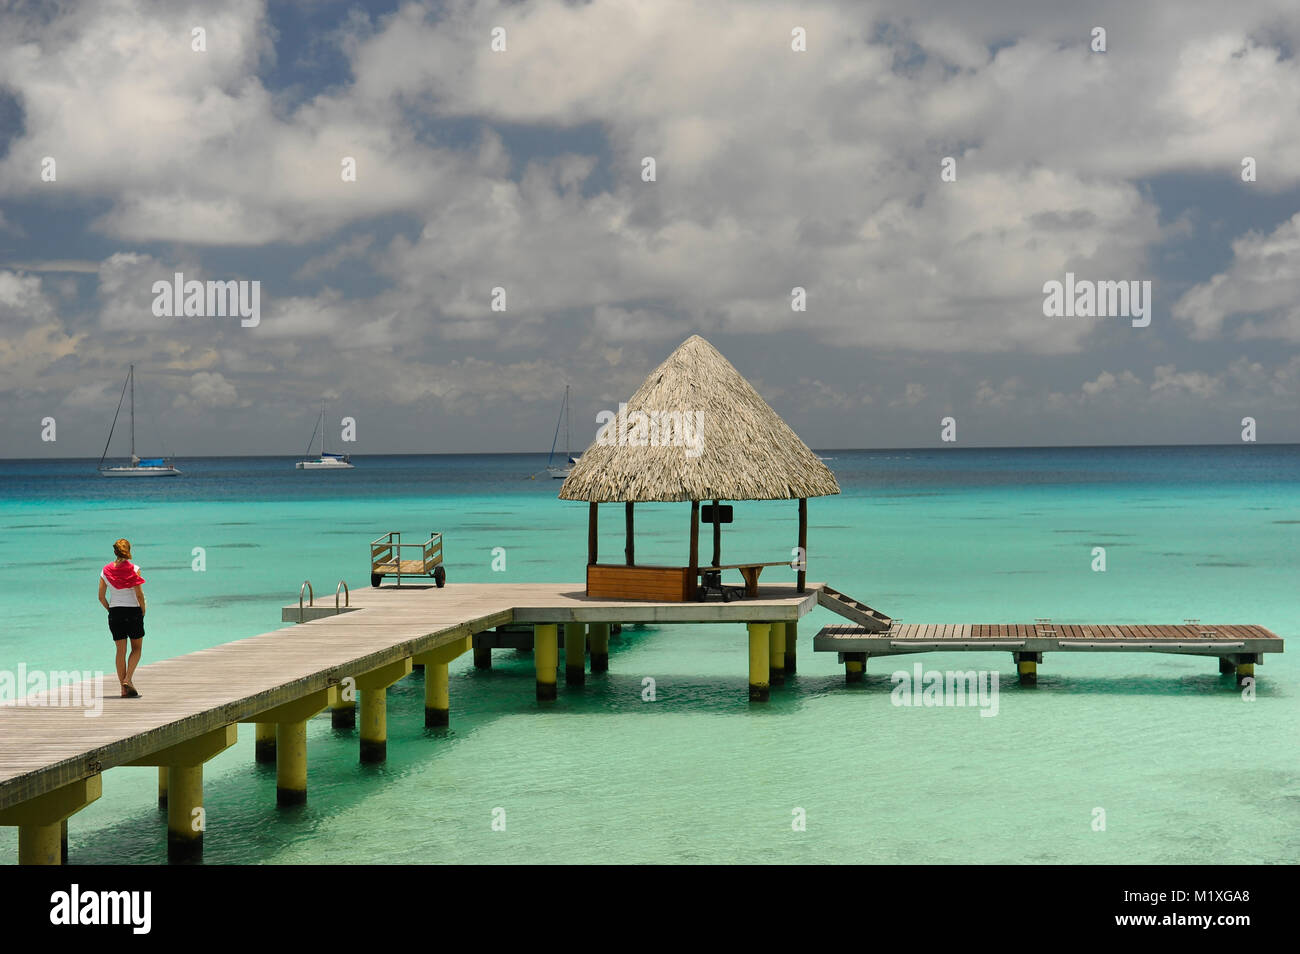 Woman walking on a pier in Bora Bora - Stock Image